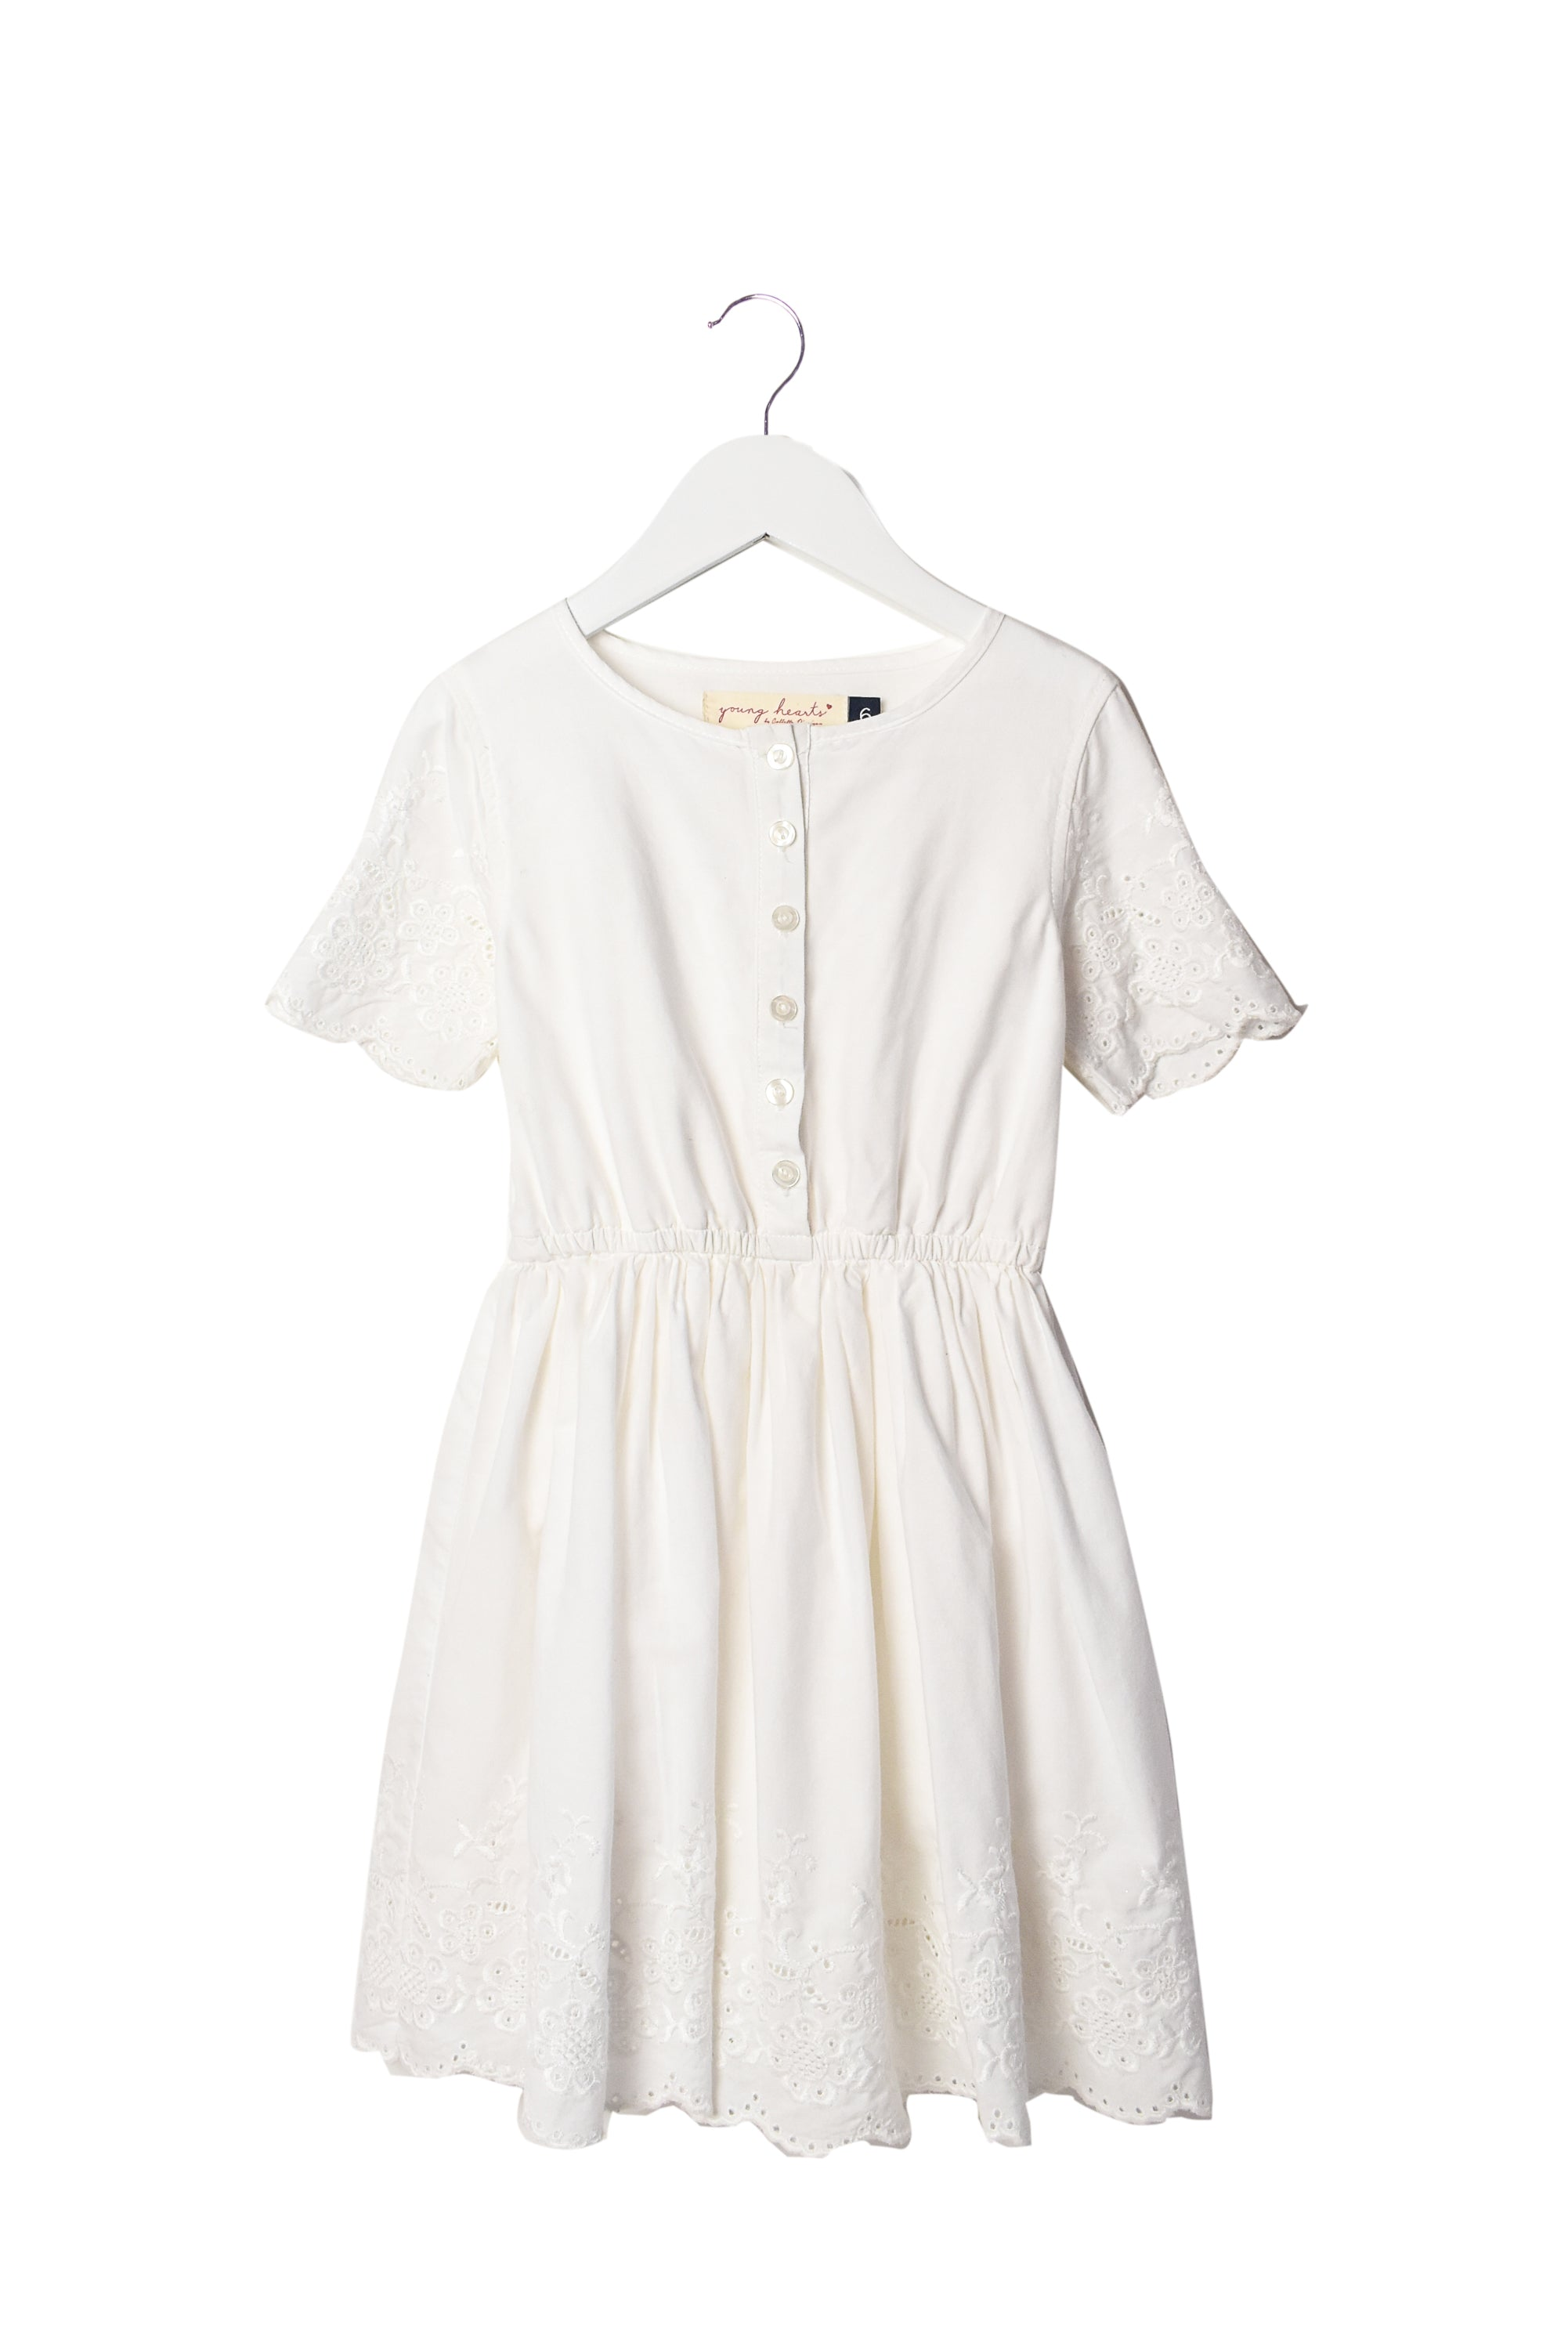 10008178 Young Hearts by Collette Dinnigan Kids~Dress 6T at Retykle